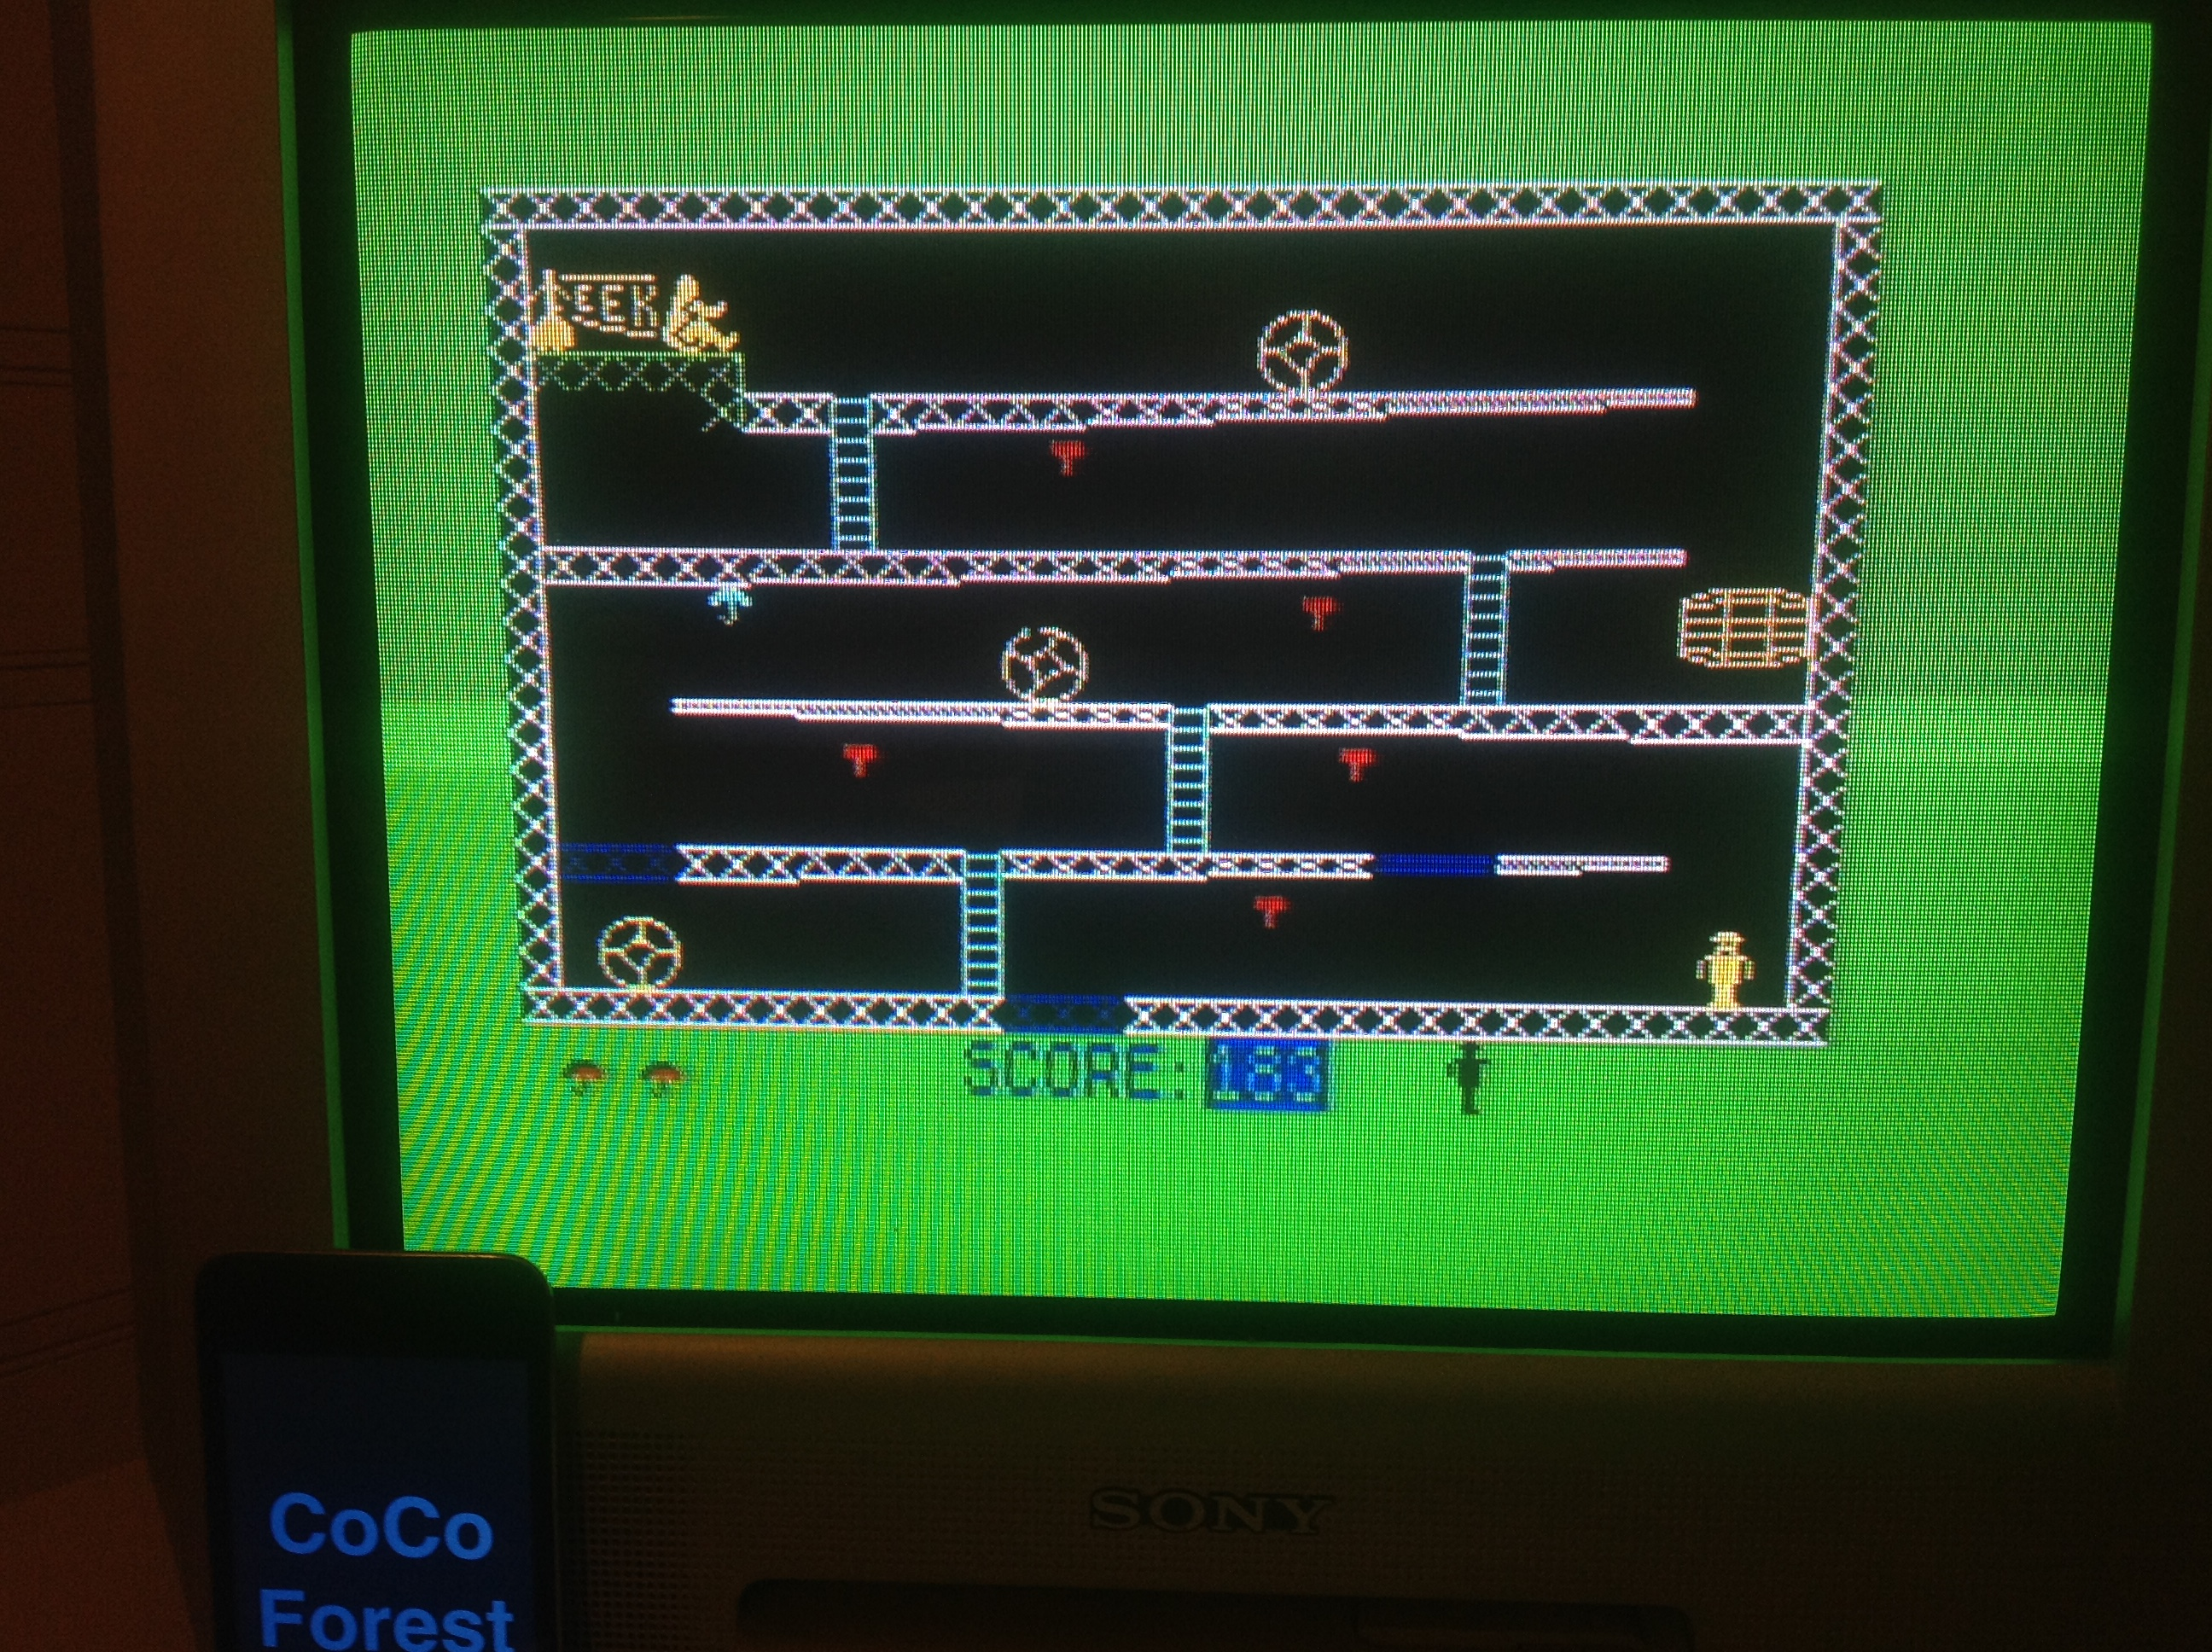 CoCoForest: Monkey Biznes (ZX Spectrum) 183 points on 2016-01-20 11:21:03